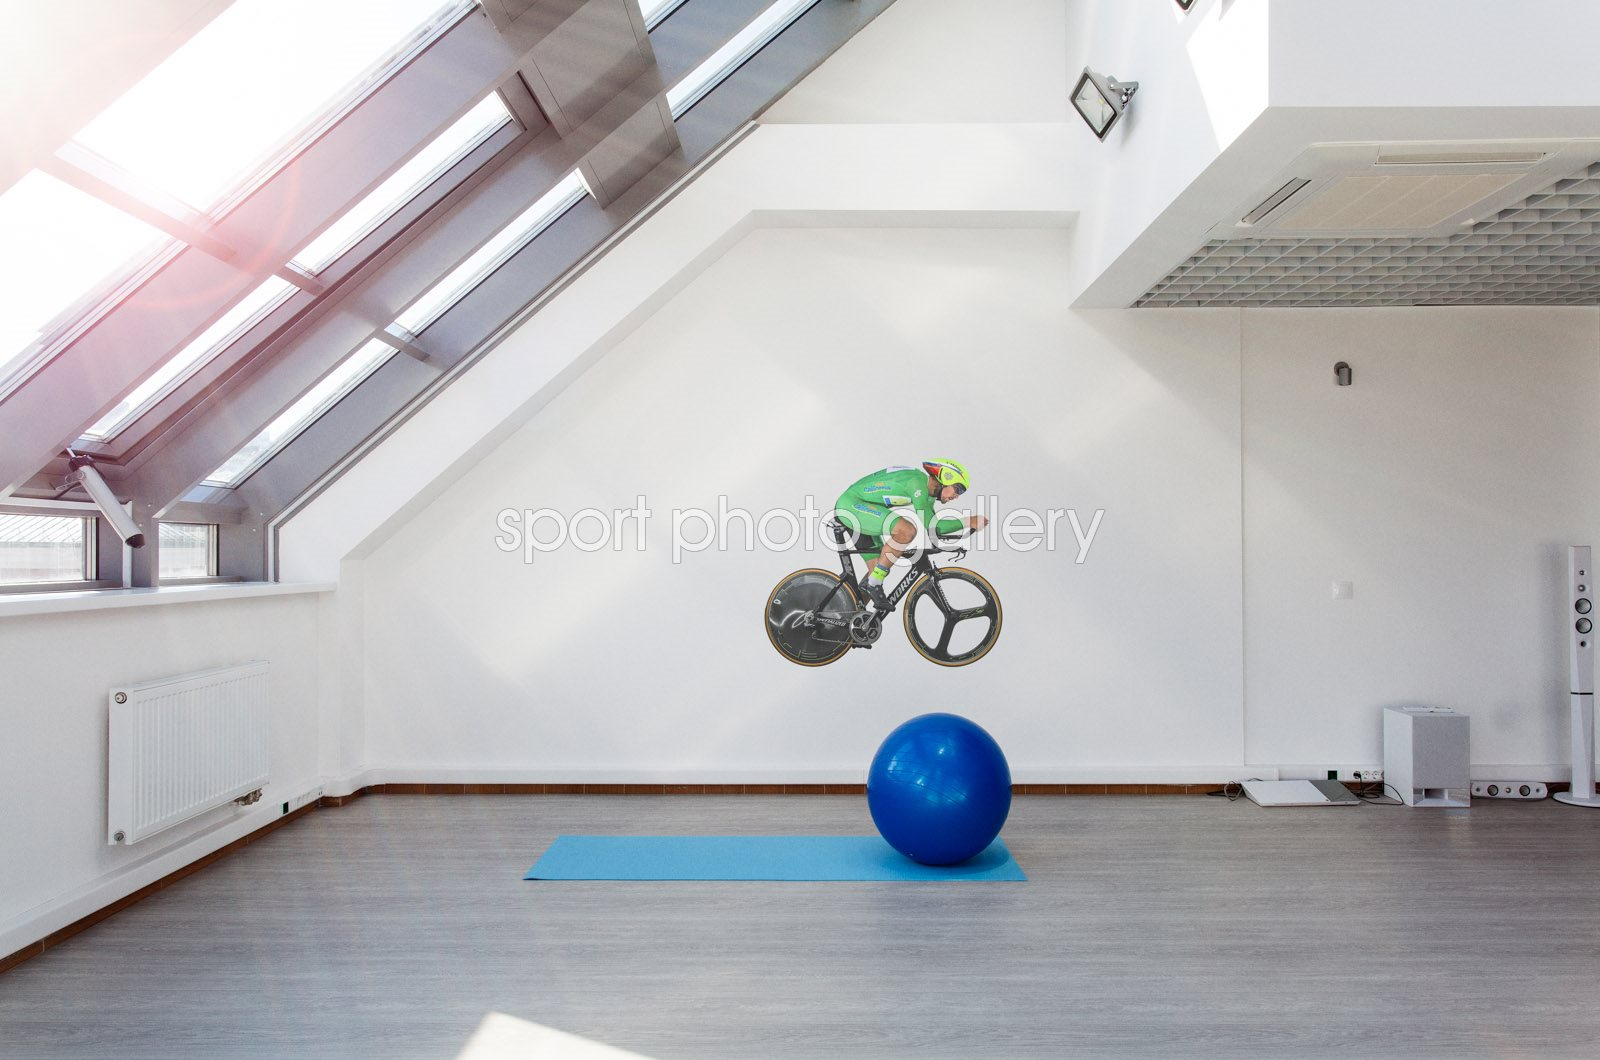 Peter Sagan time trail lifesize wall sticker